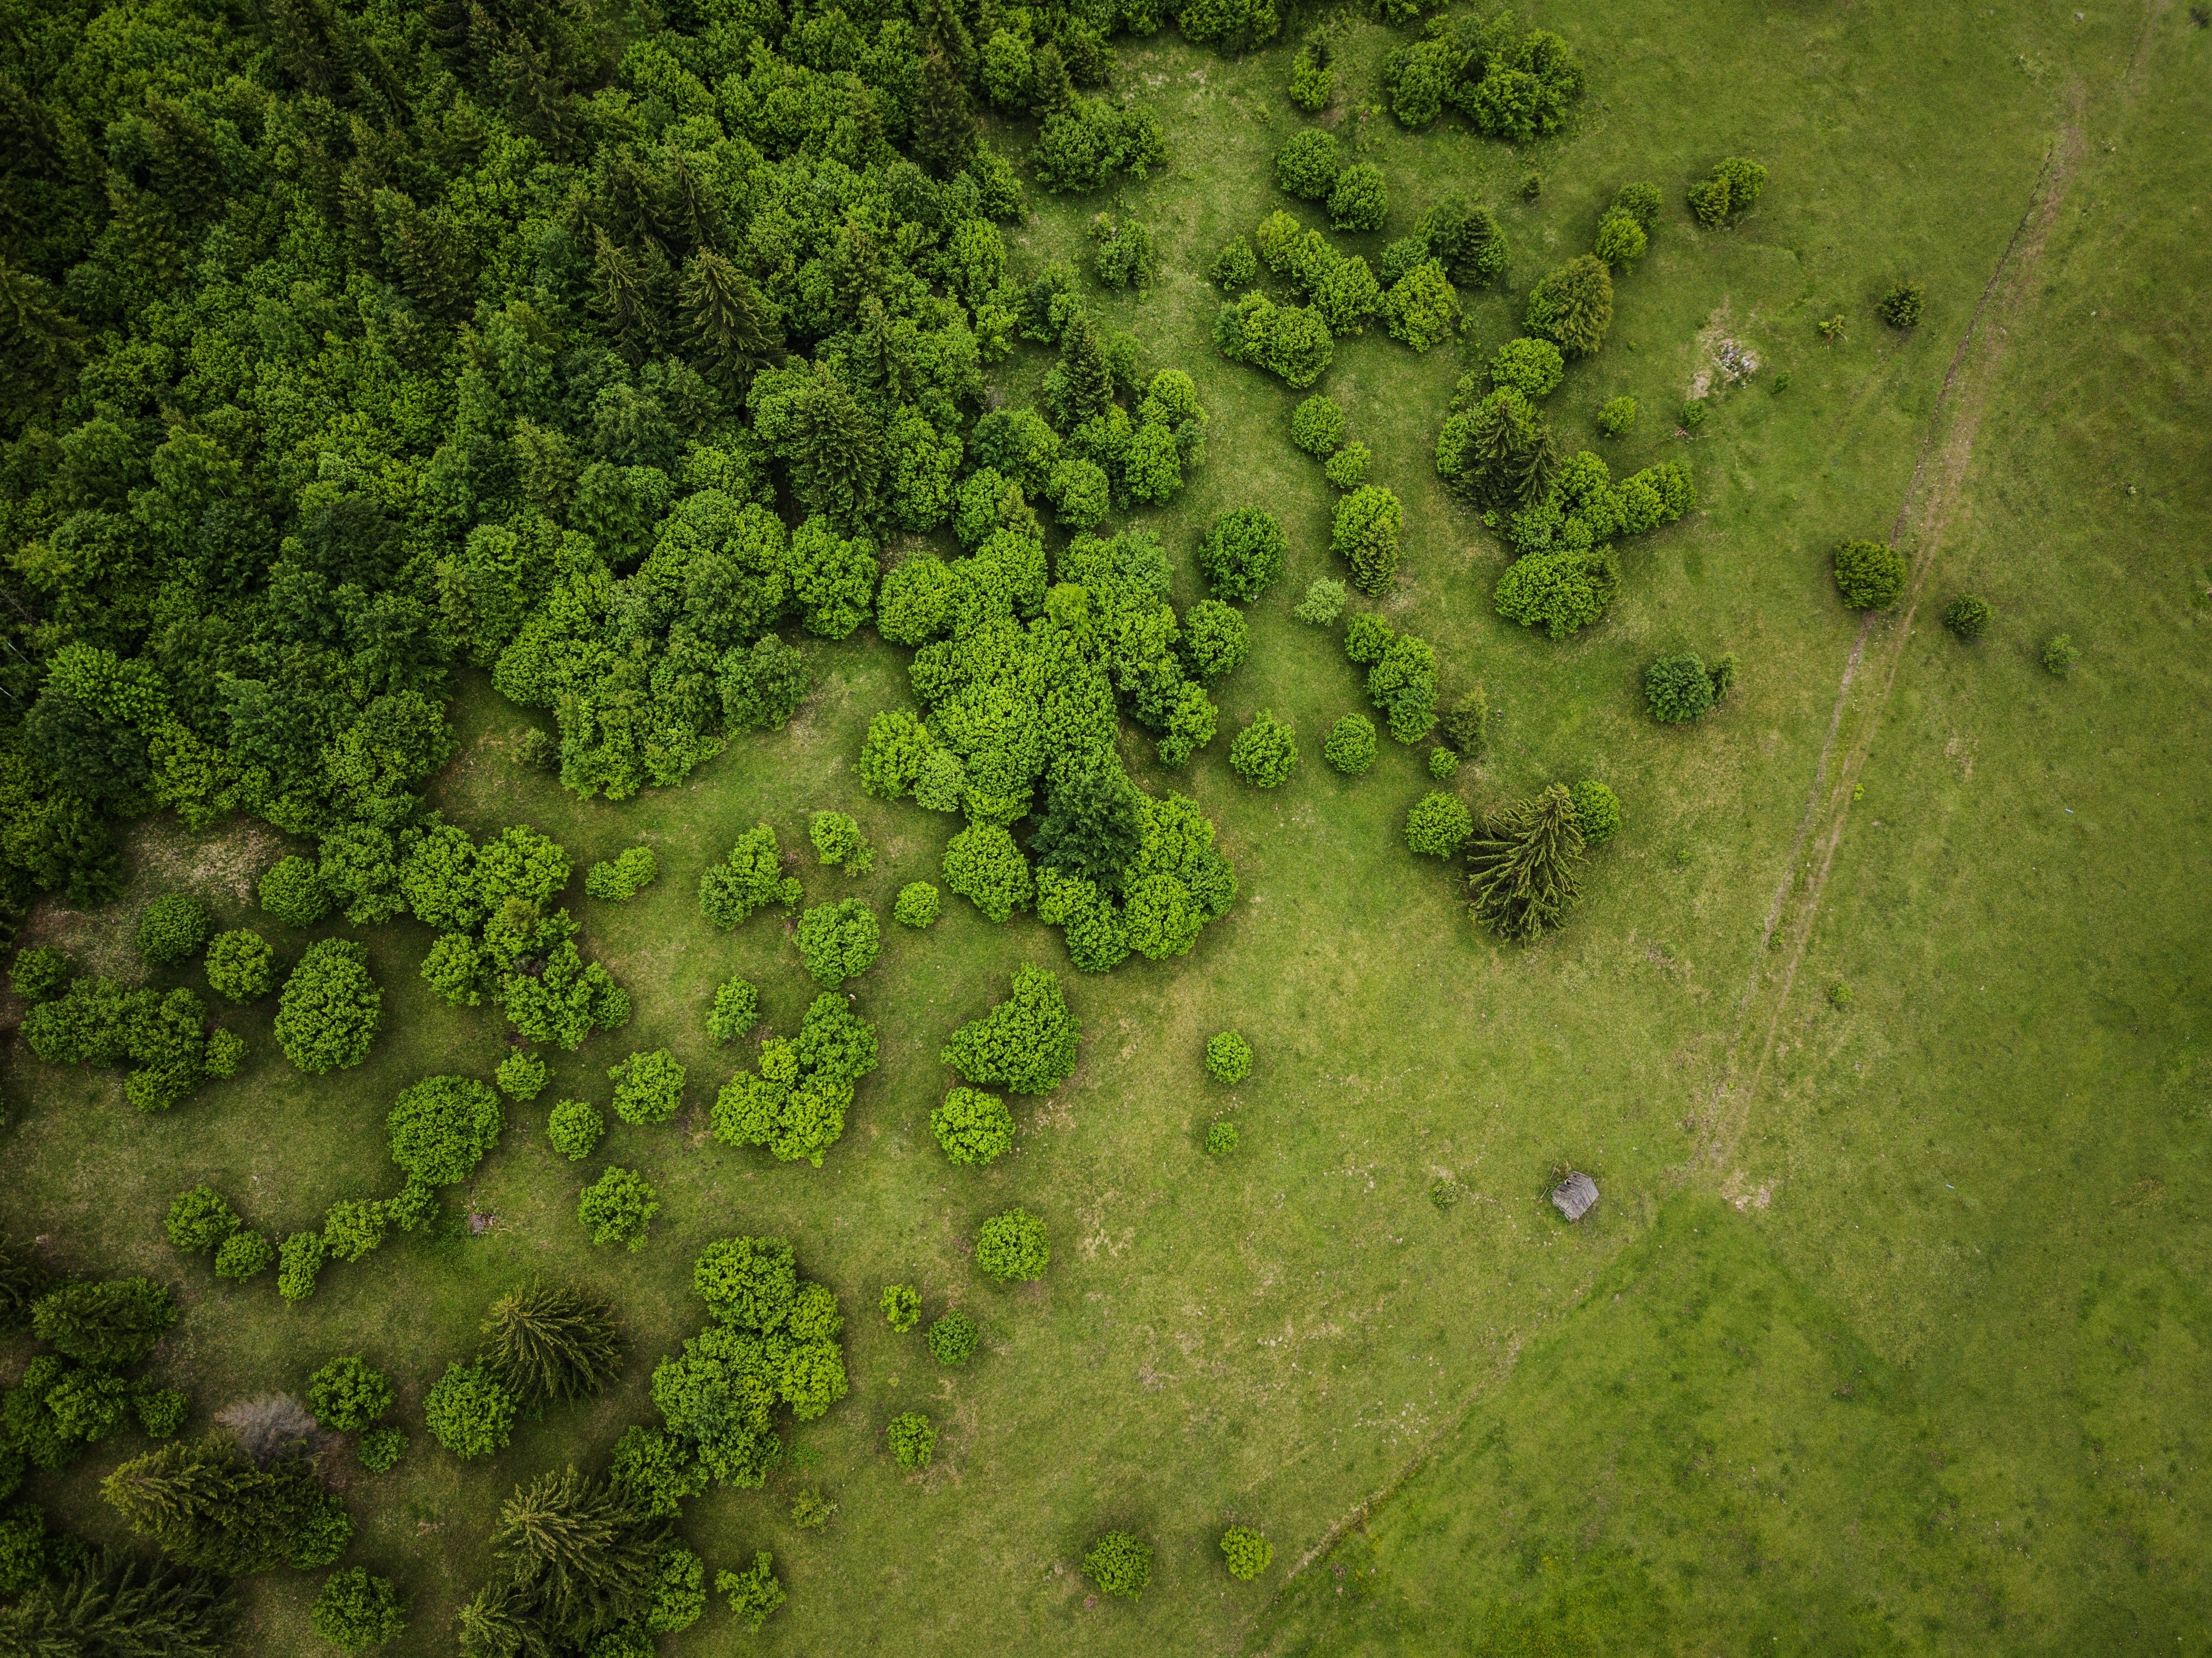 bird's-eye view photography of land with trees